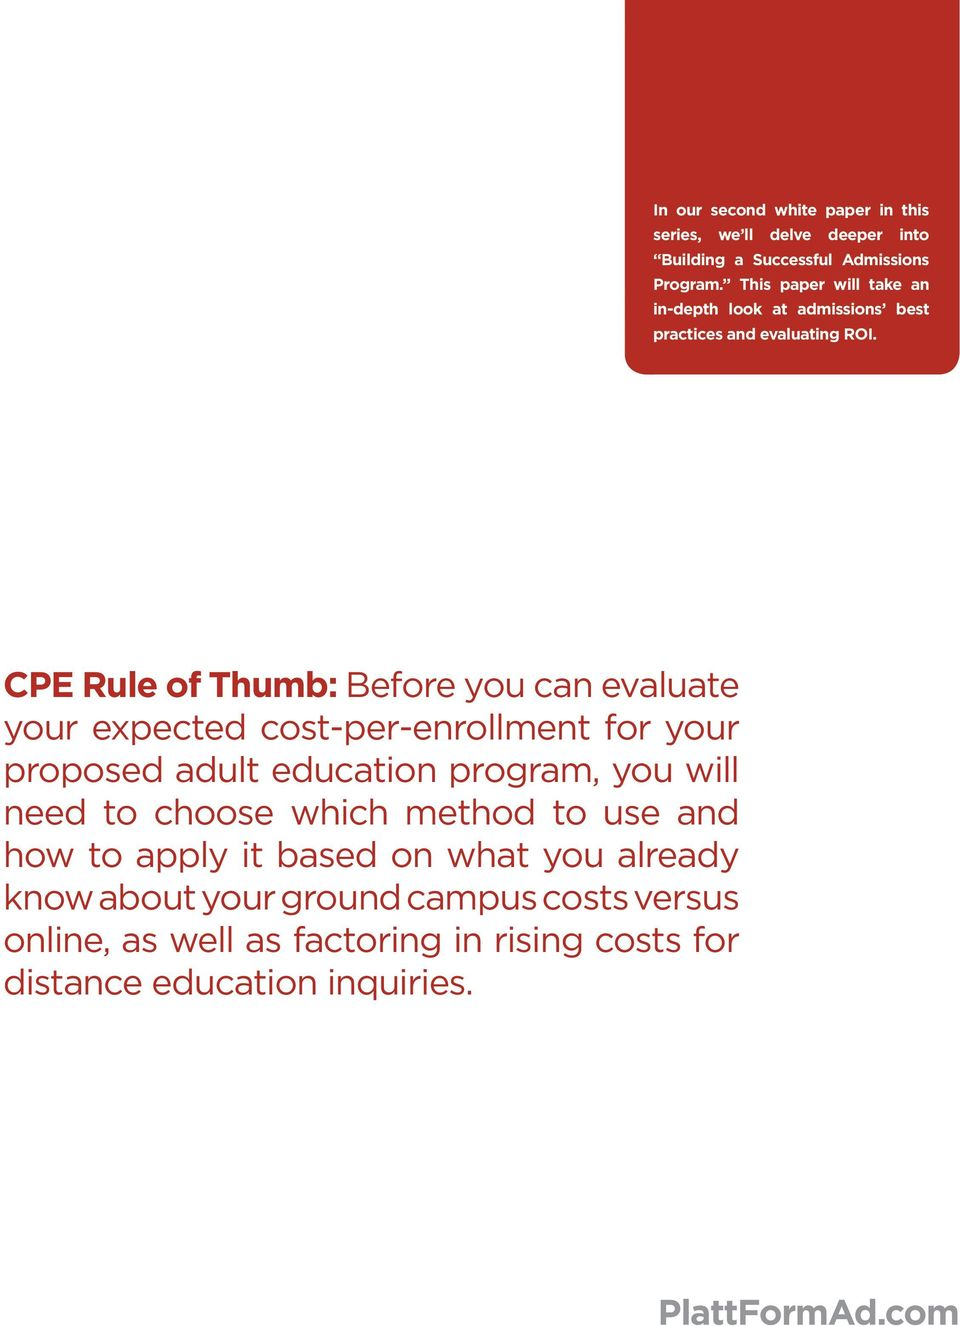 CPE Rule of Thumb: Before you can evaluate your expected cost-per-enrollment for your proposed adult education program, you will need